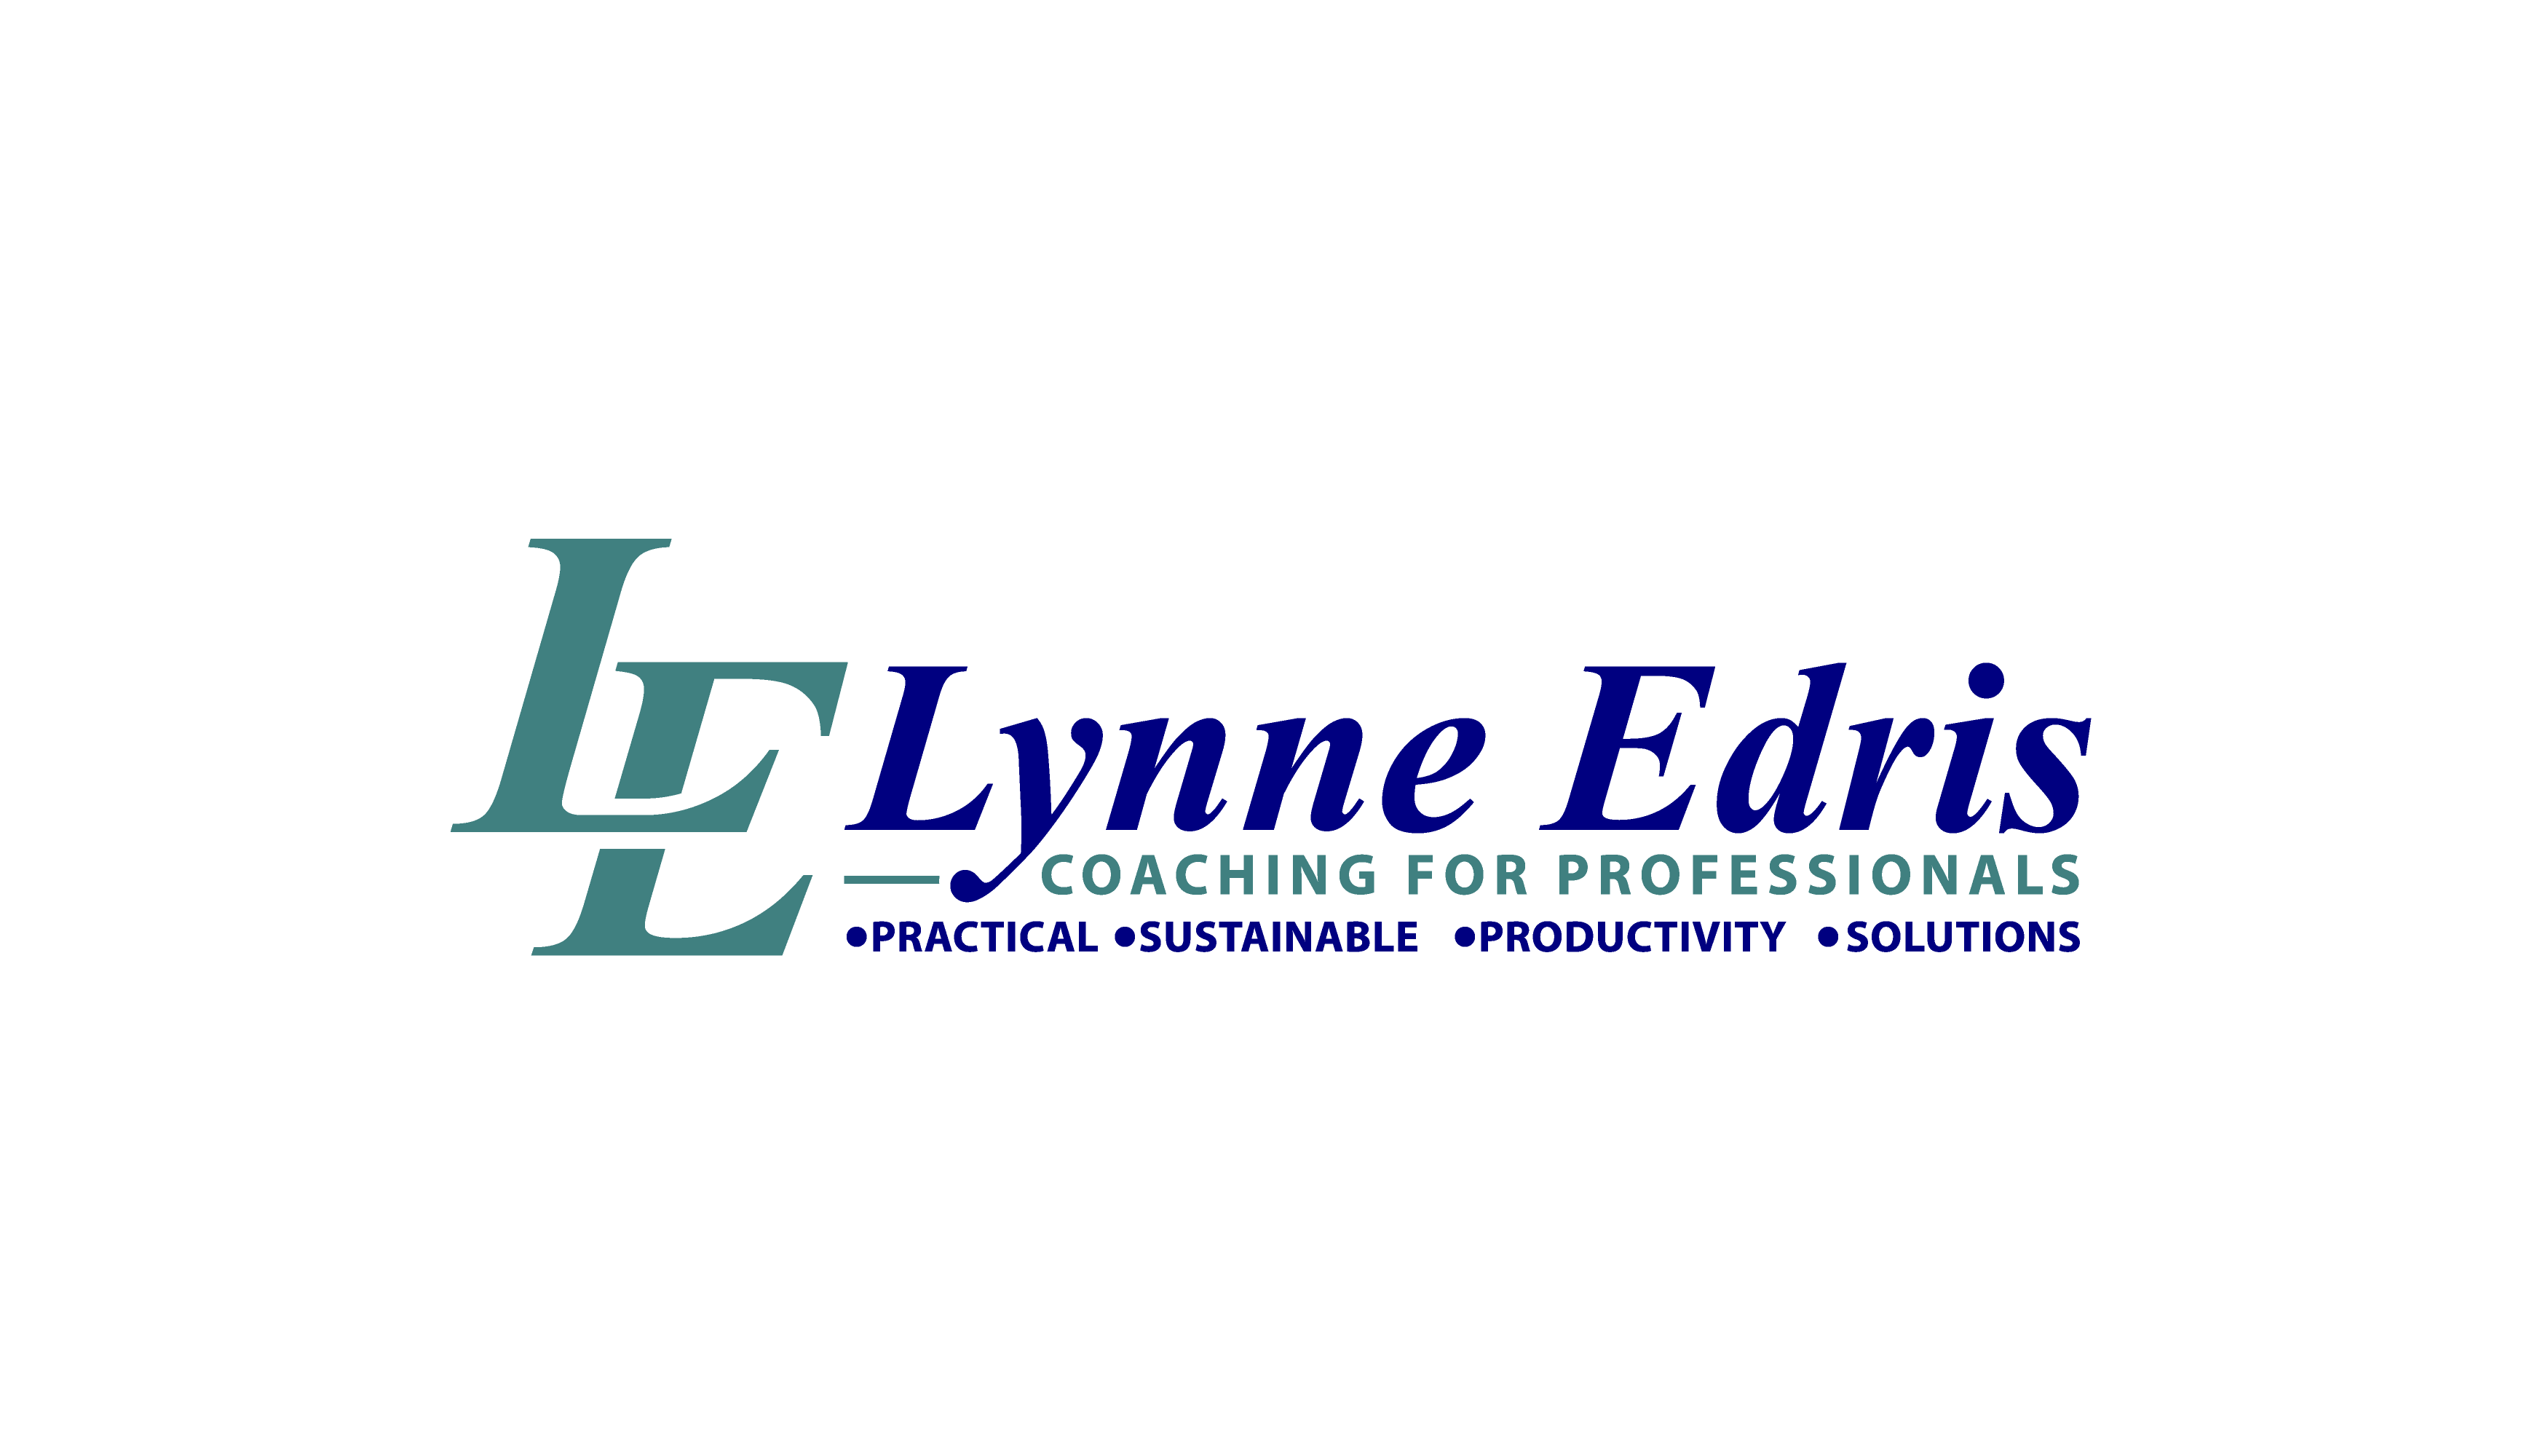 Lynne Edris Coaching for Professionals. Practical. Sustainable. Productivity. Solutions. Logo